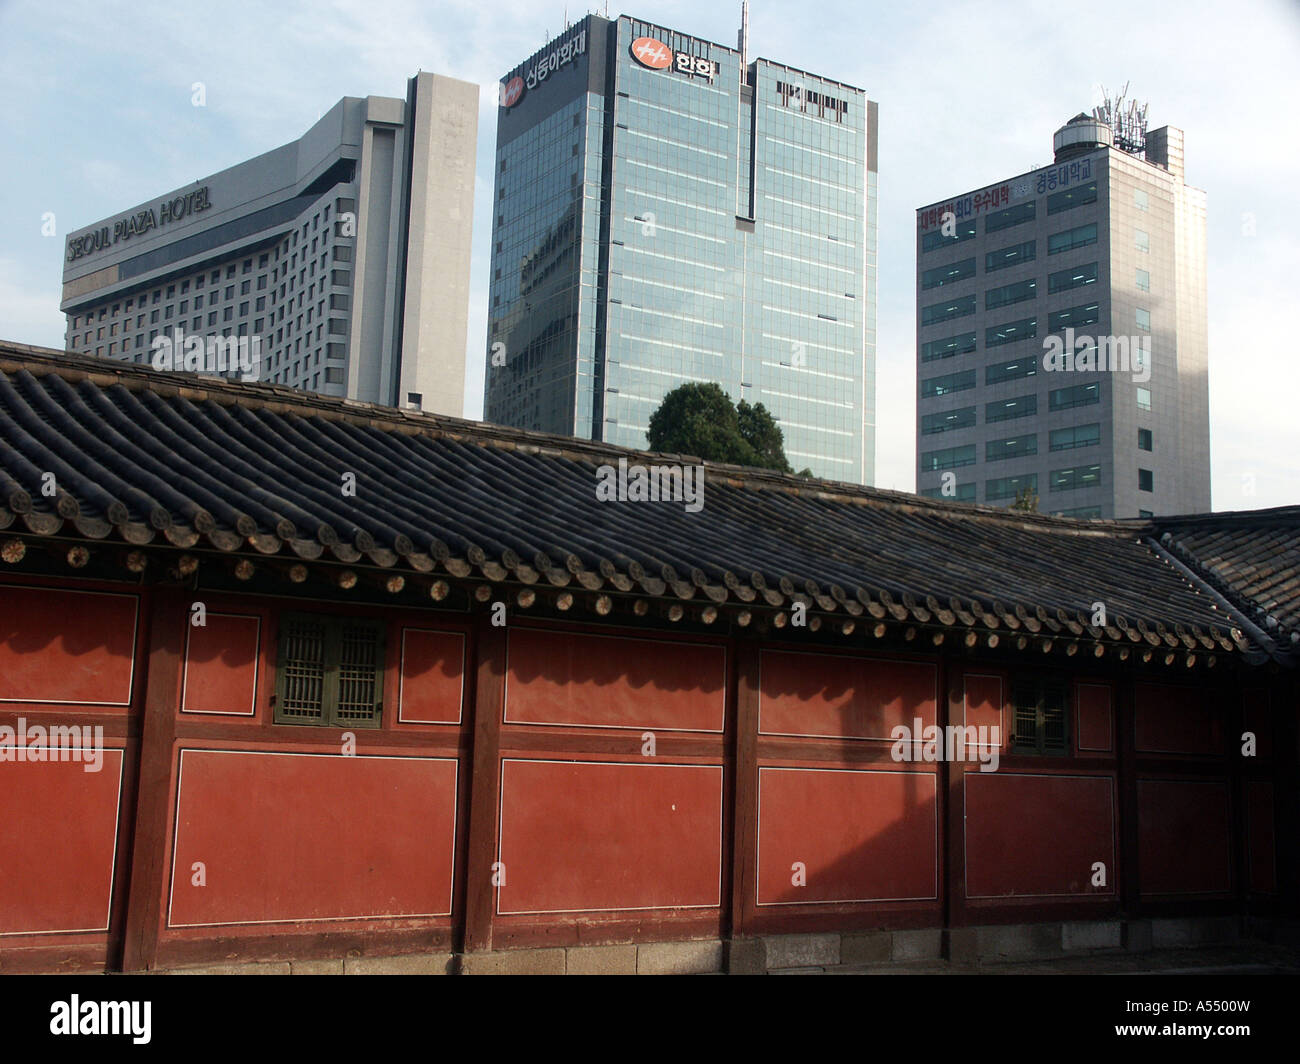 Painet ip2237 korea old new royal palace seoul 2003 country developing nation less economically developed culture - Stock Image